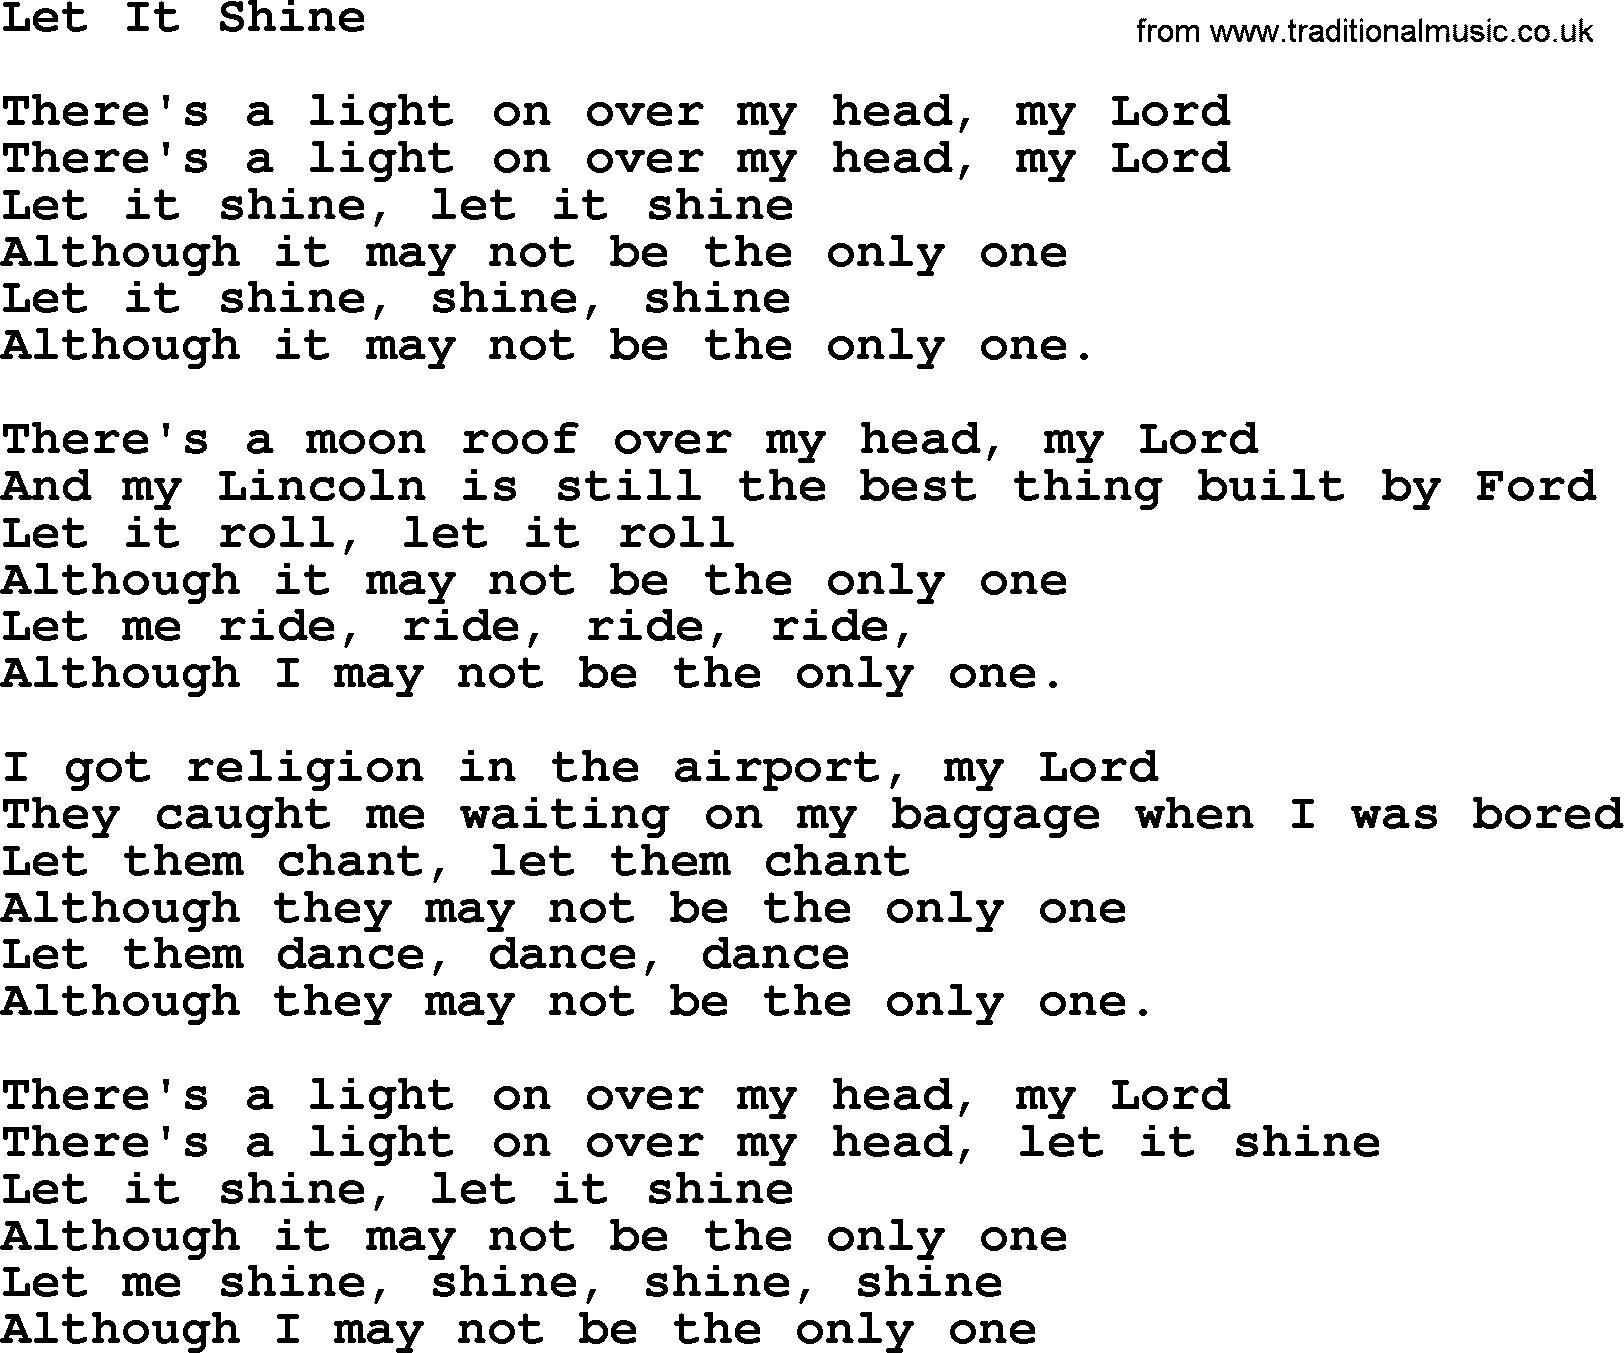 Let It Shine, by The Byrds - lyrics with pdf